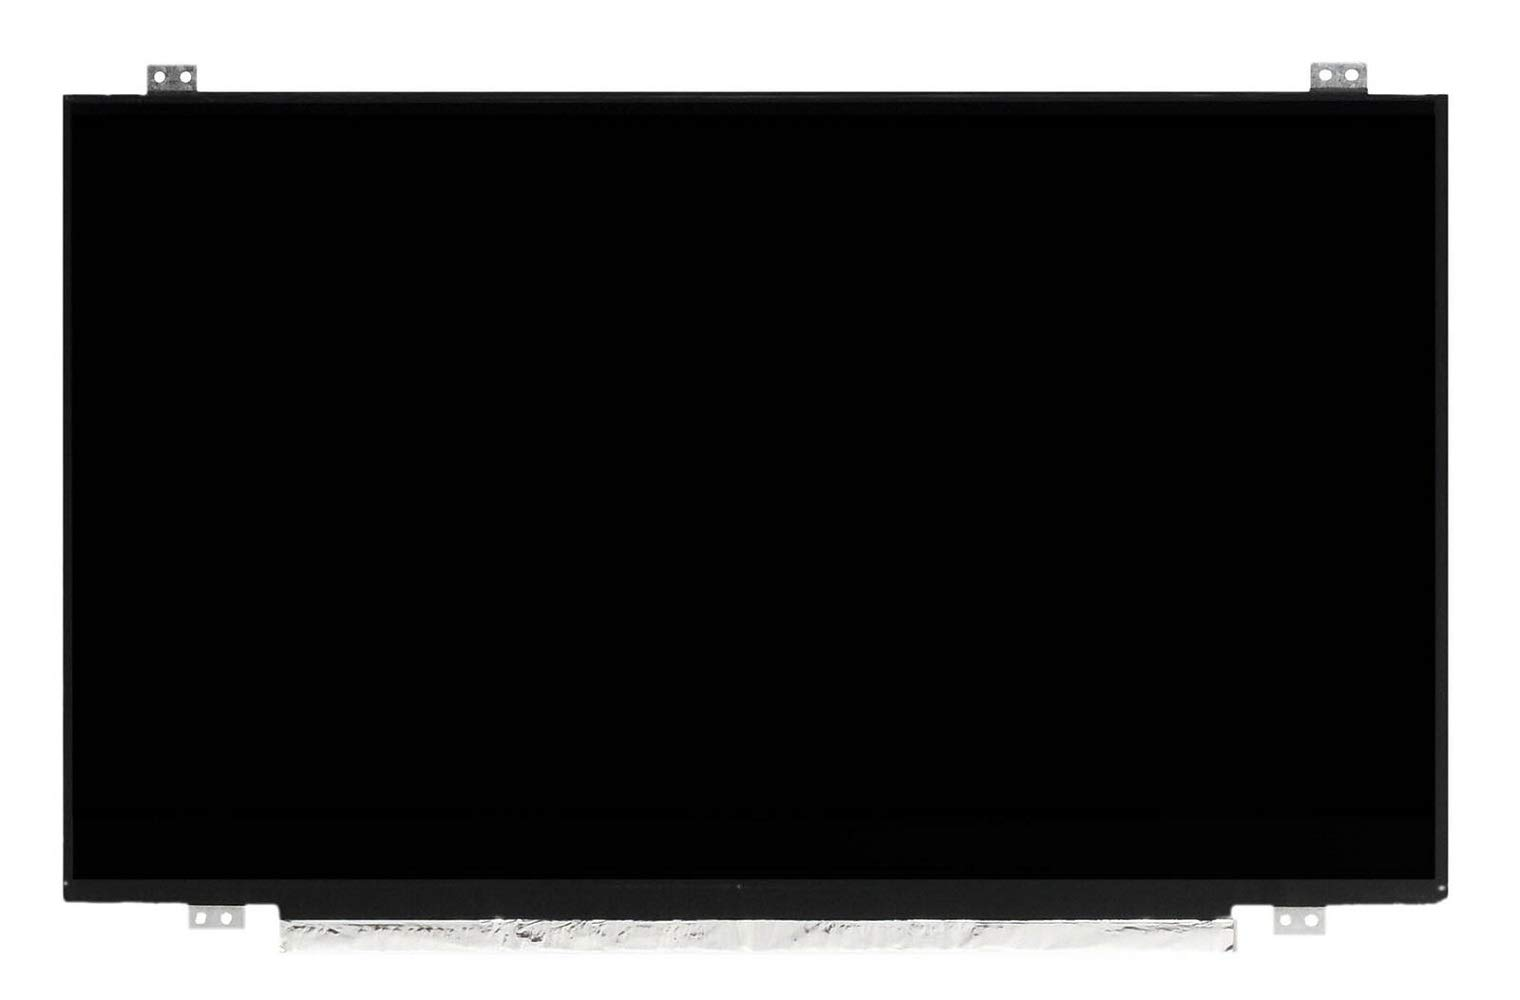 New Replacement 14'' FHD (1920X1080) LCD LED Screen Display Panel 840698-001 For HP ProBook 640 G2 645 G2